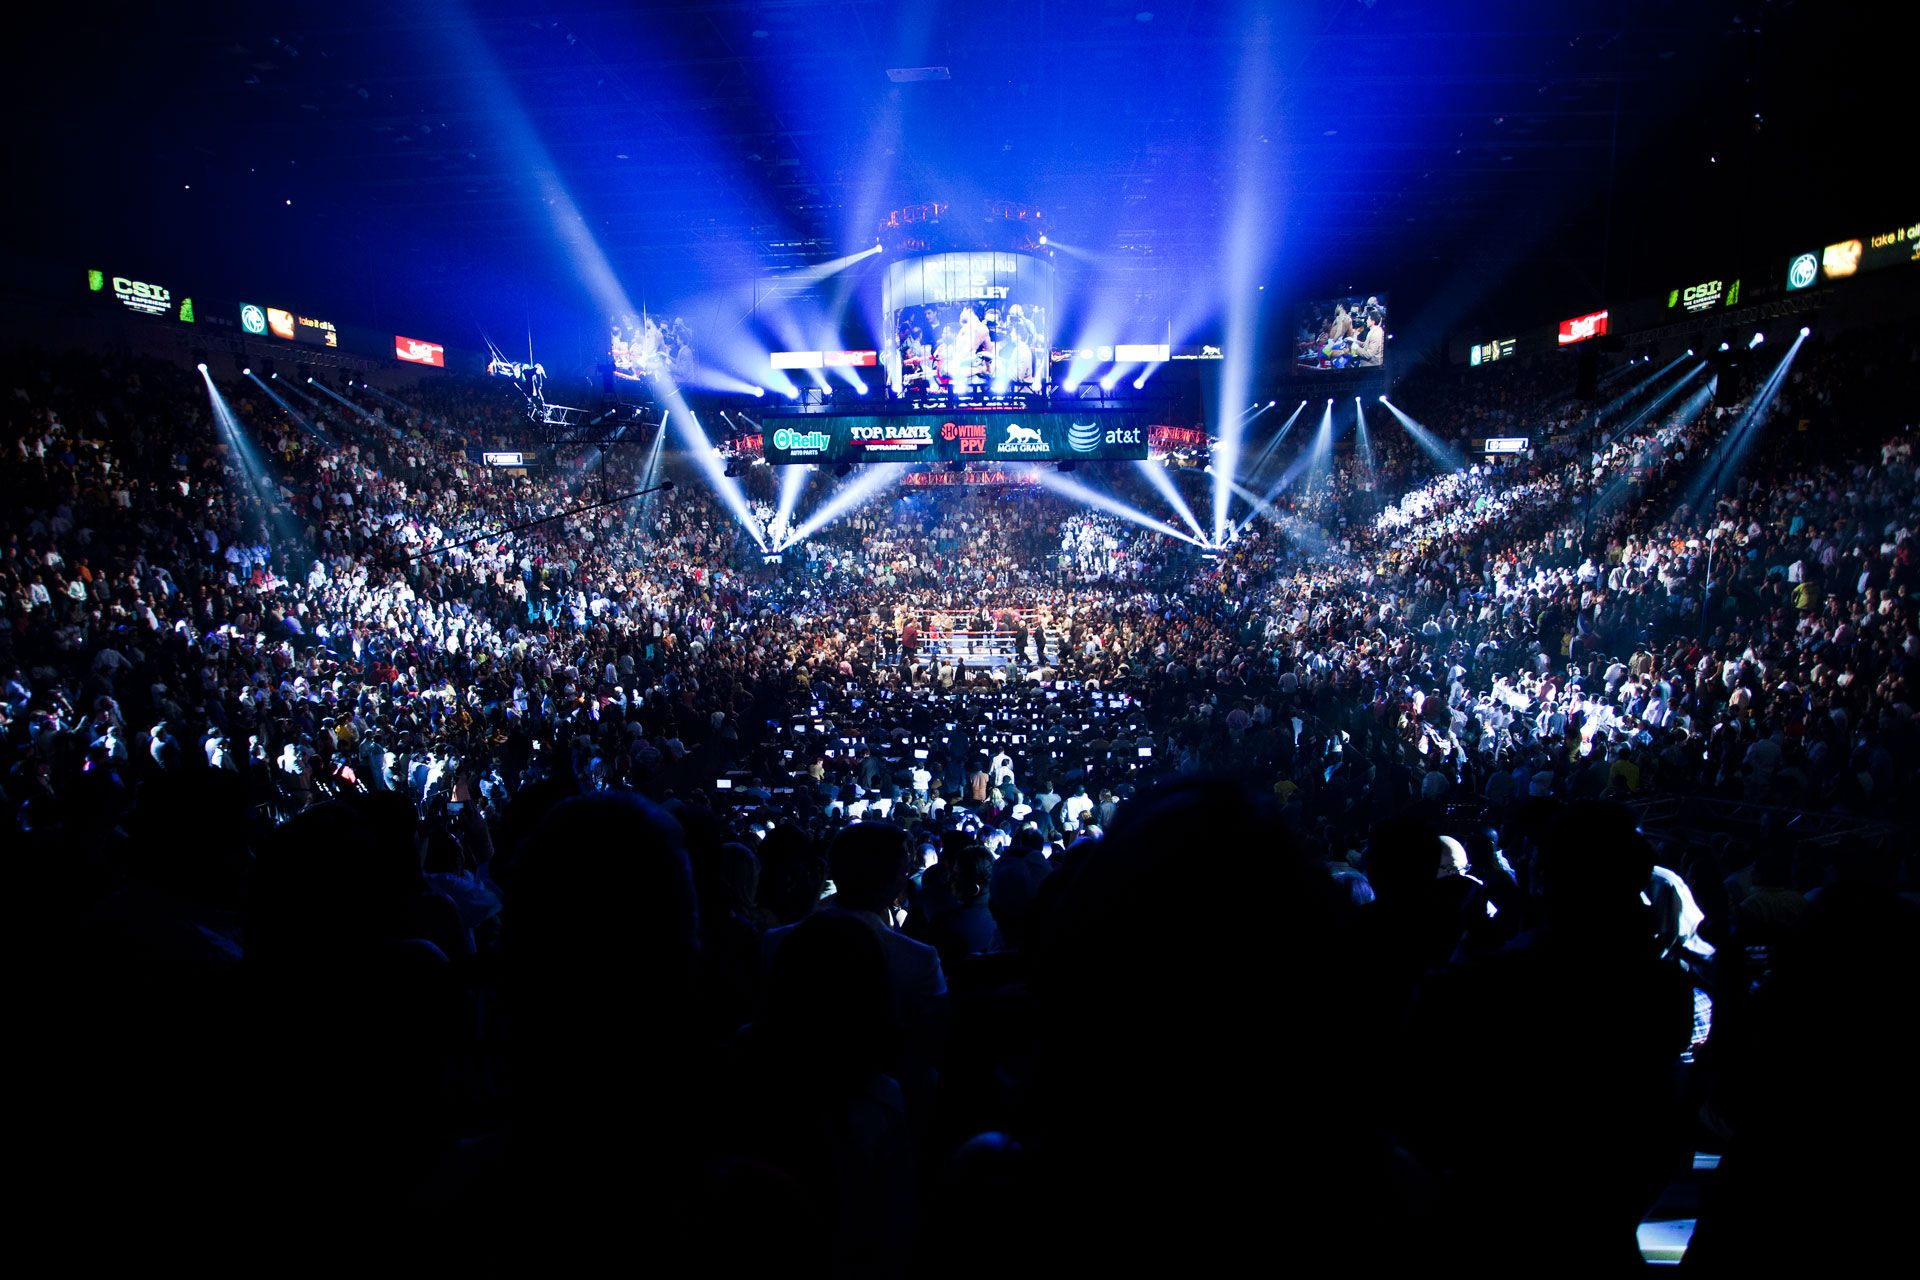 It S Showtime In The Mgm Grand Garden Arena Mgm Grand Garden Arena Boxing Live Stream Boxing Live